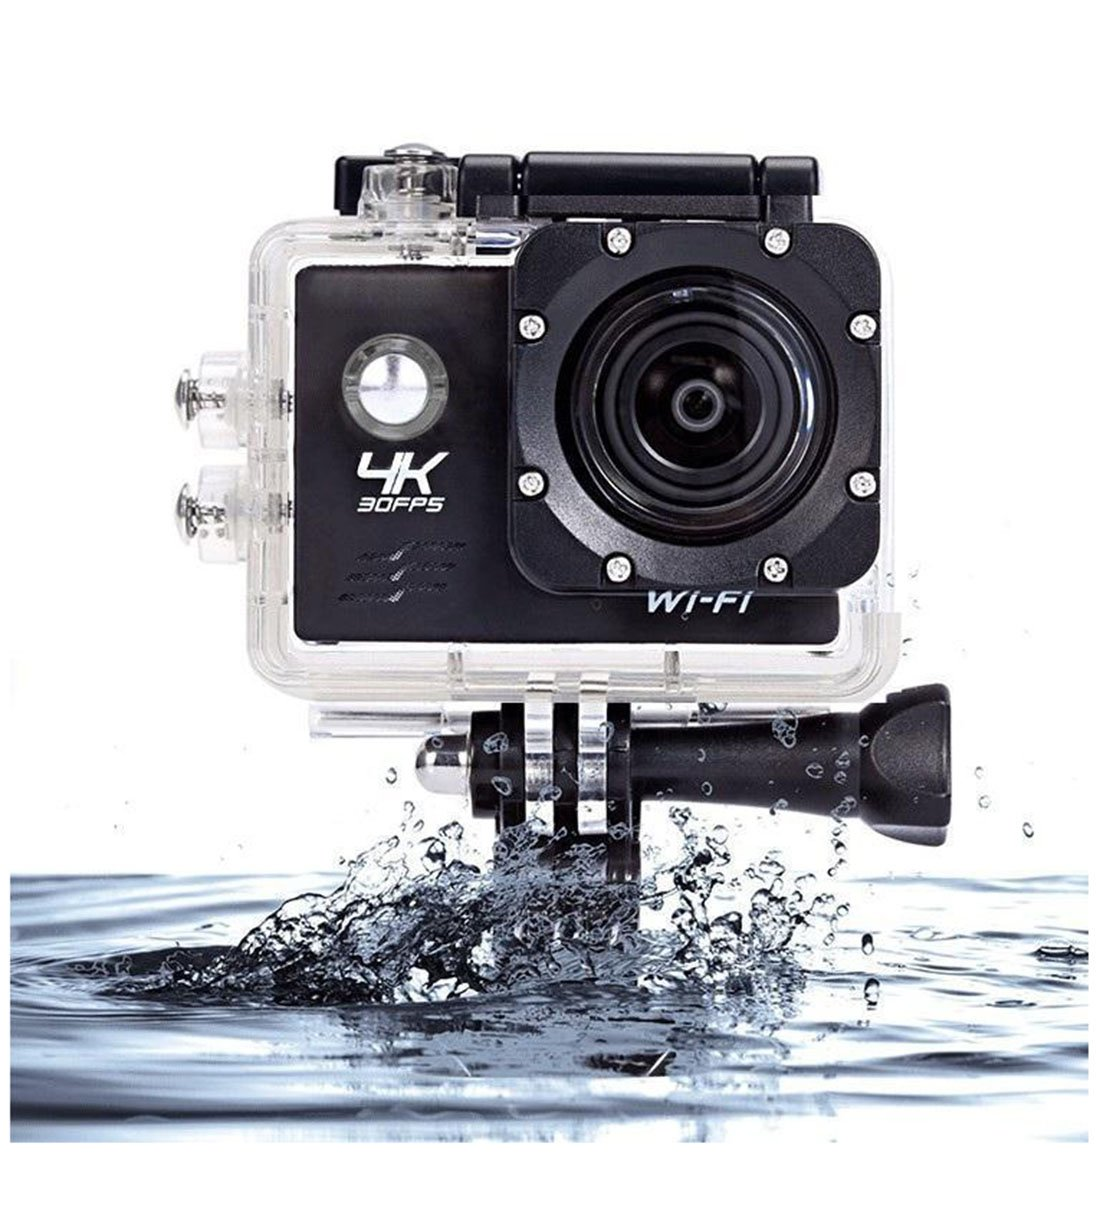 WIFI Sports Action Camera Waterproof Cameras - HD 1080P Underwater Camera Diving Camcorder with Mounts and Accessories for Kids, Snorkeling, Motorcycle, Bike, Helmet, Car, Ski and Water Sports